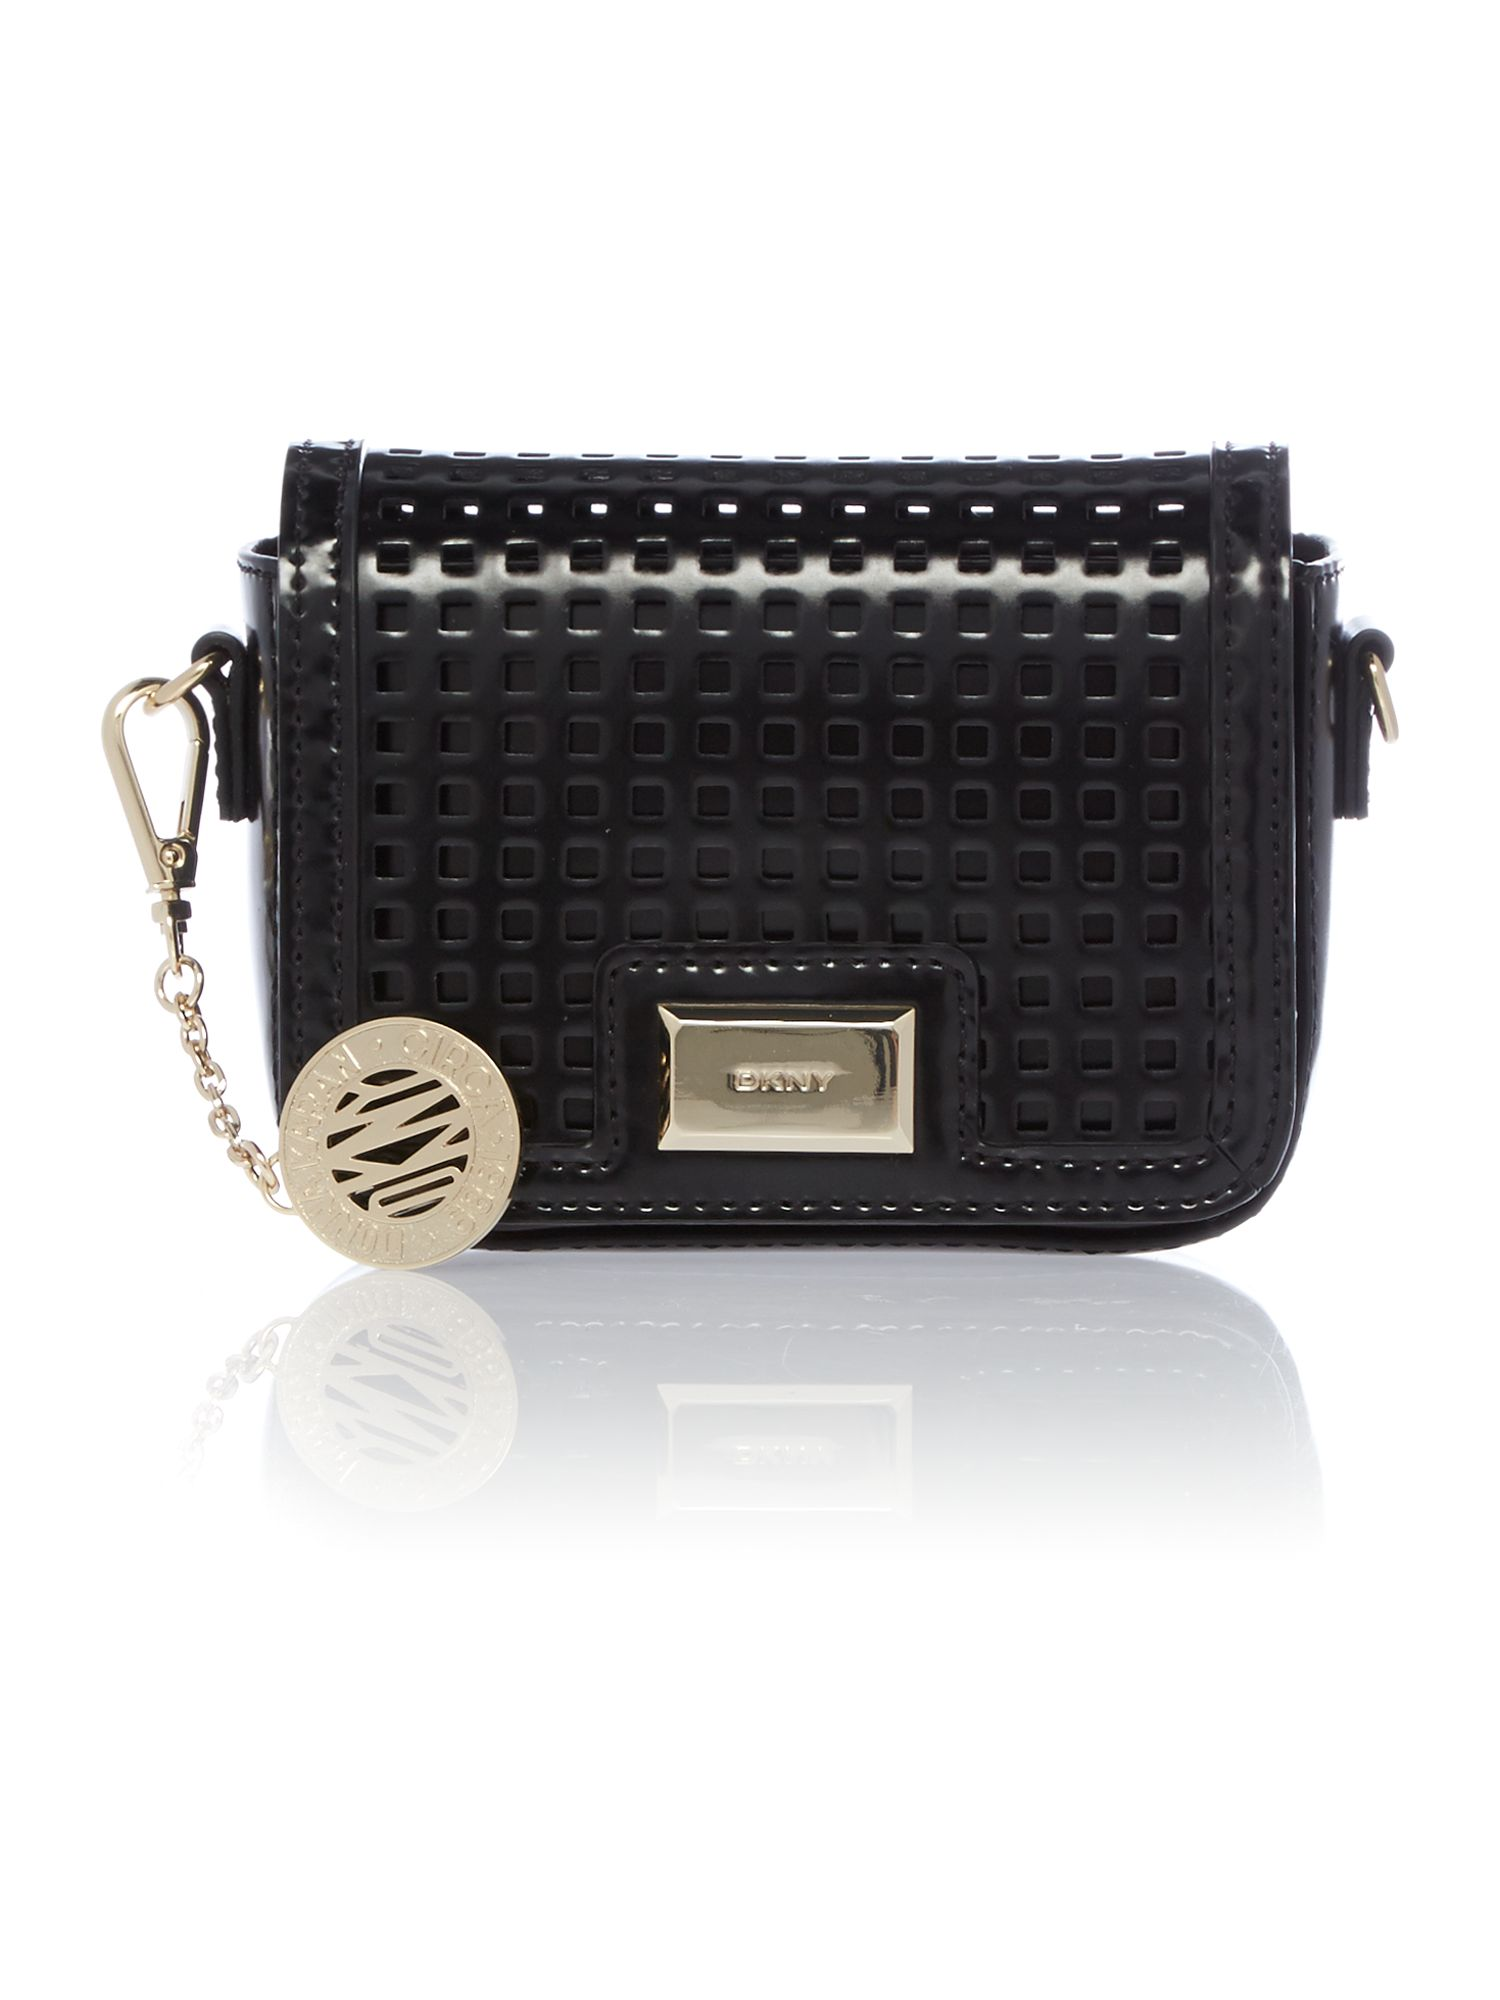 Hudson black mini crossbody bag